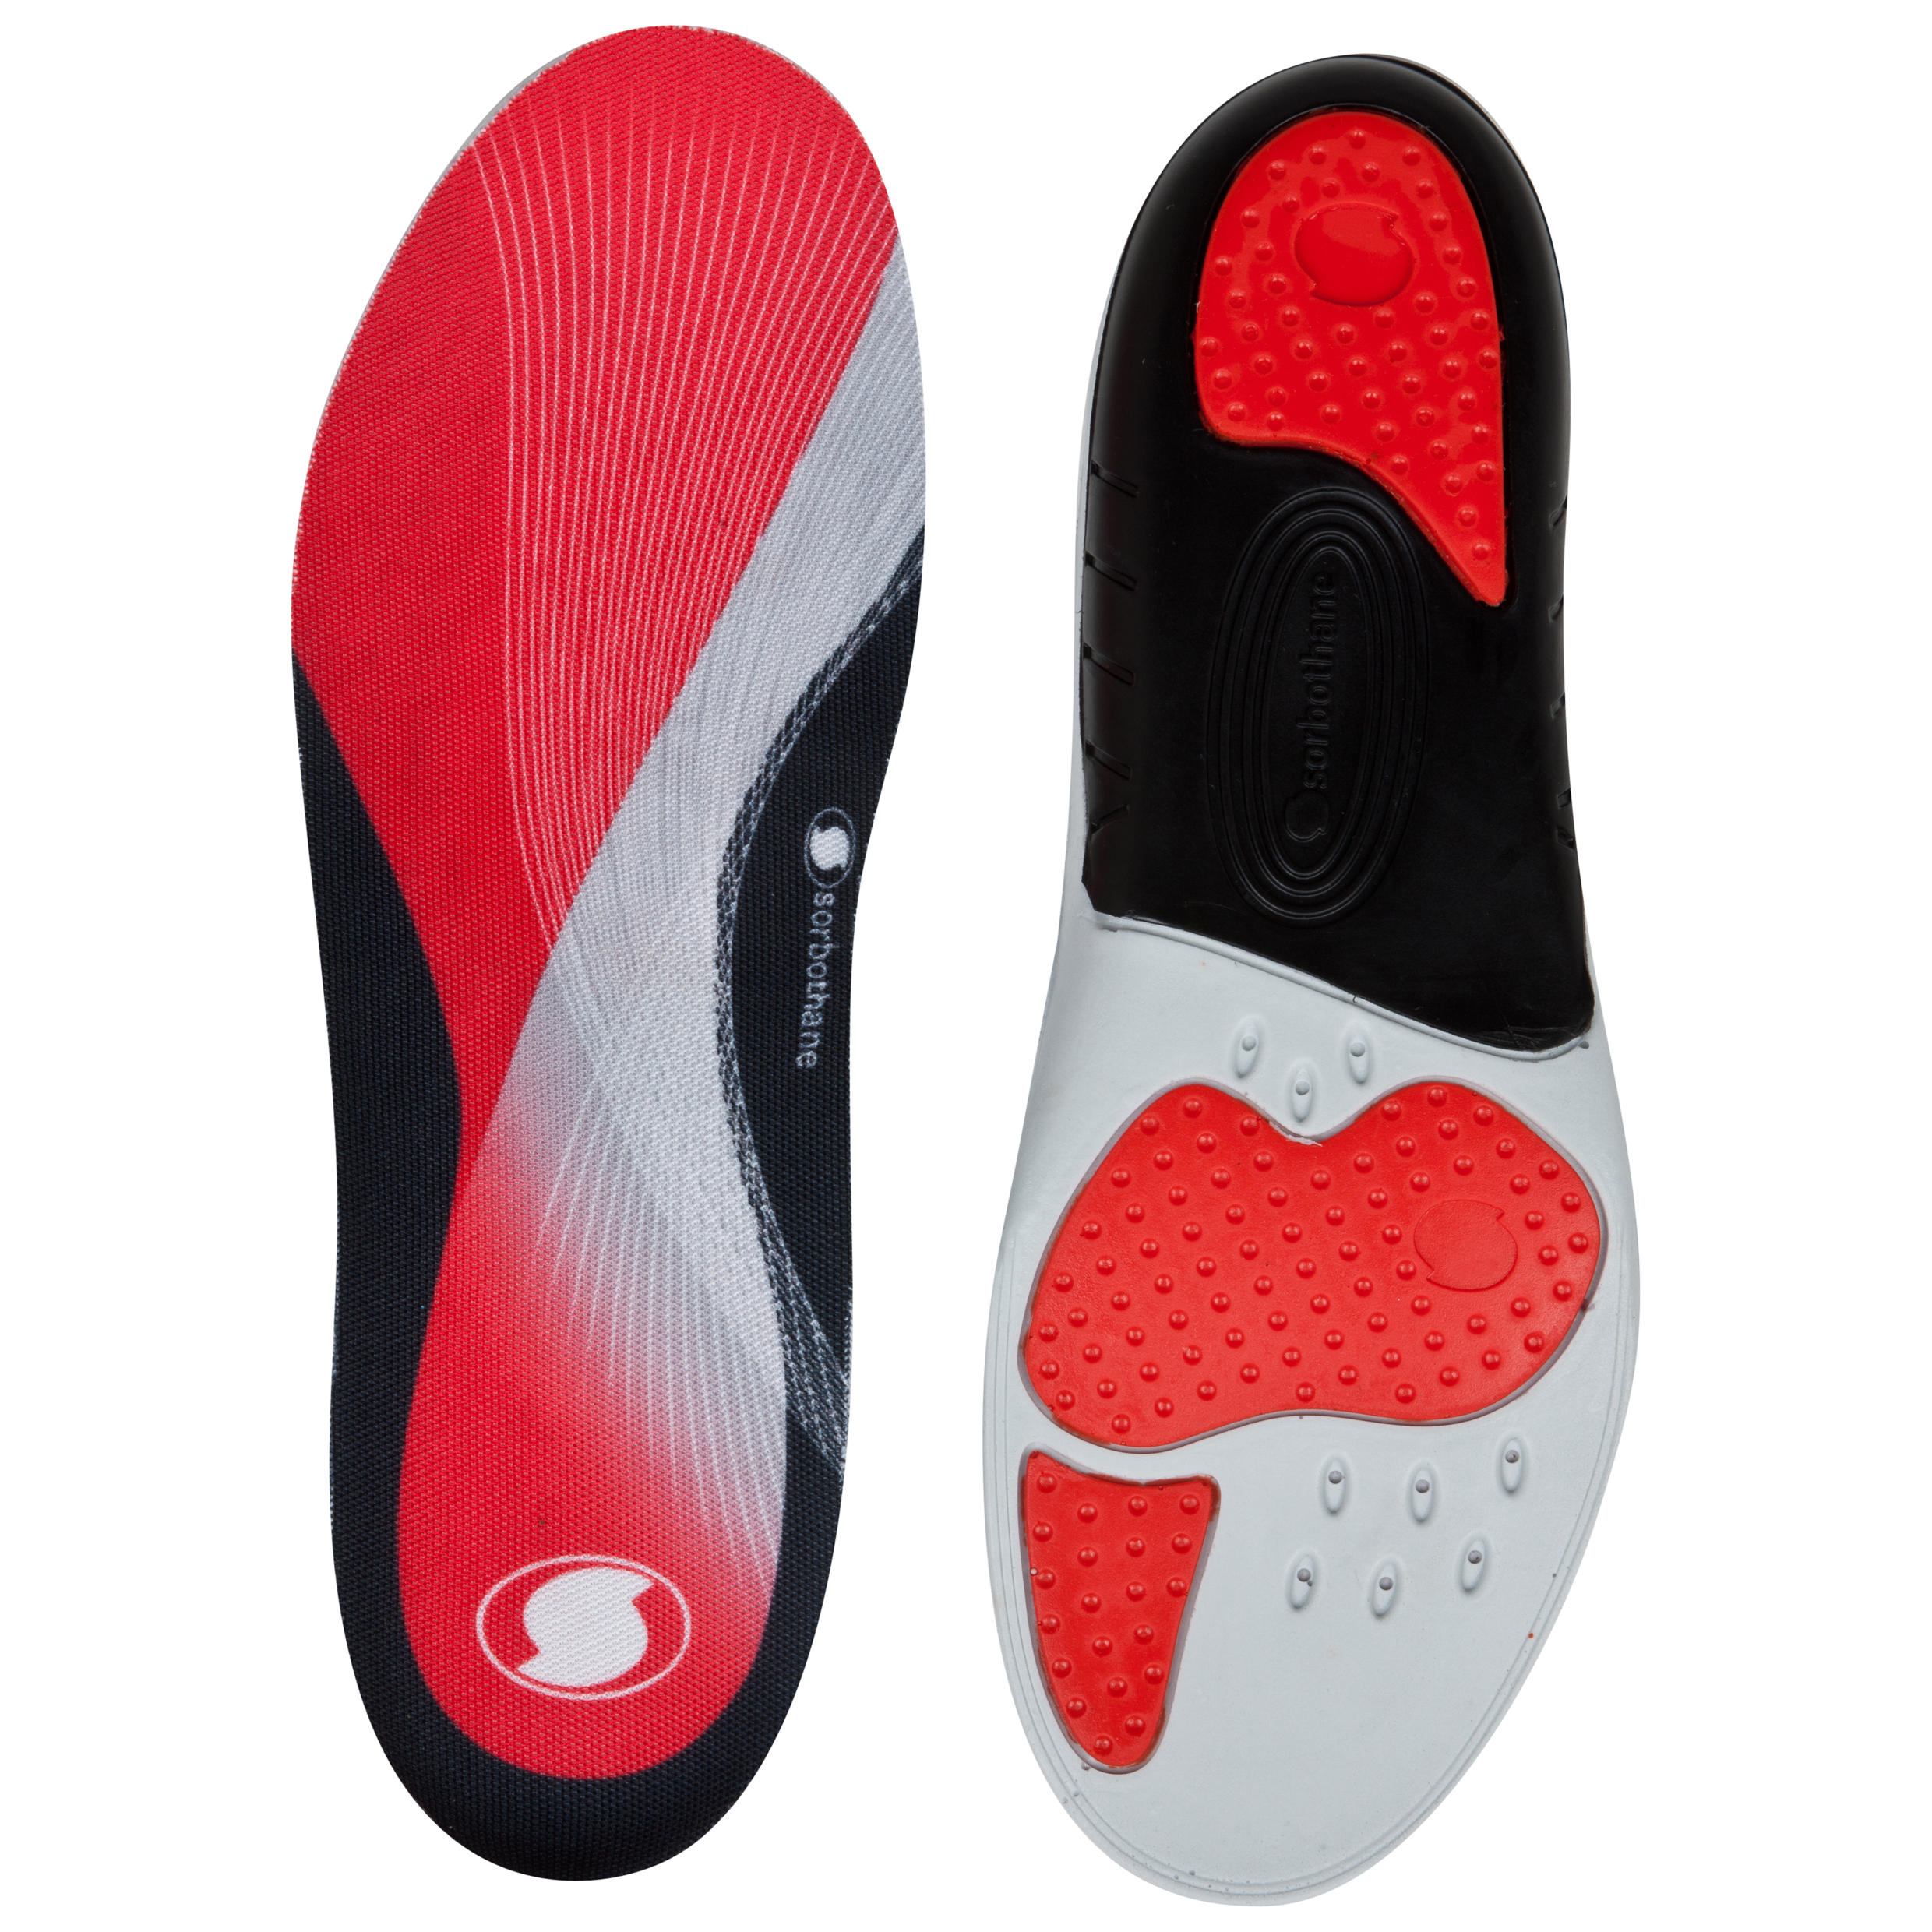 Sorbothane Sorbo Pro Insoles - Red